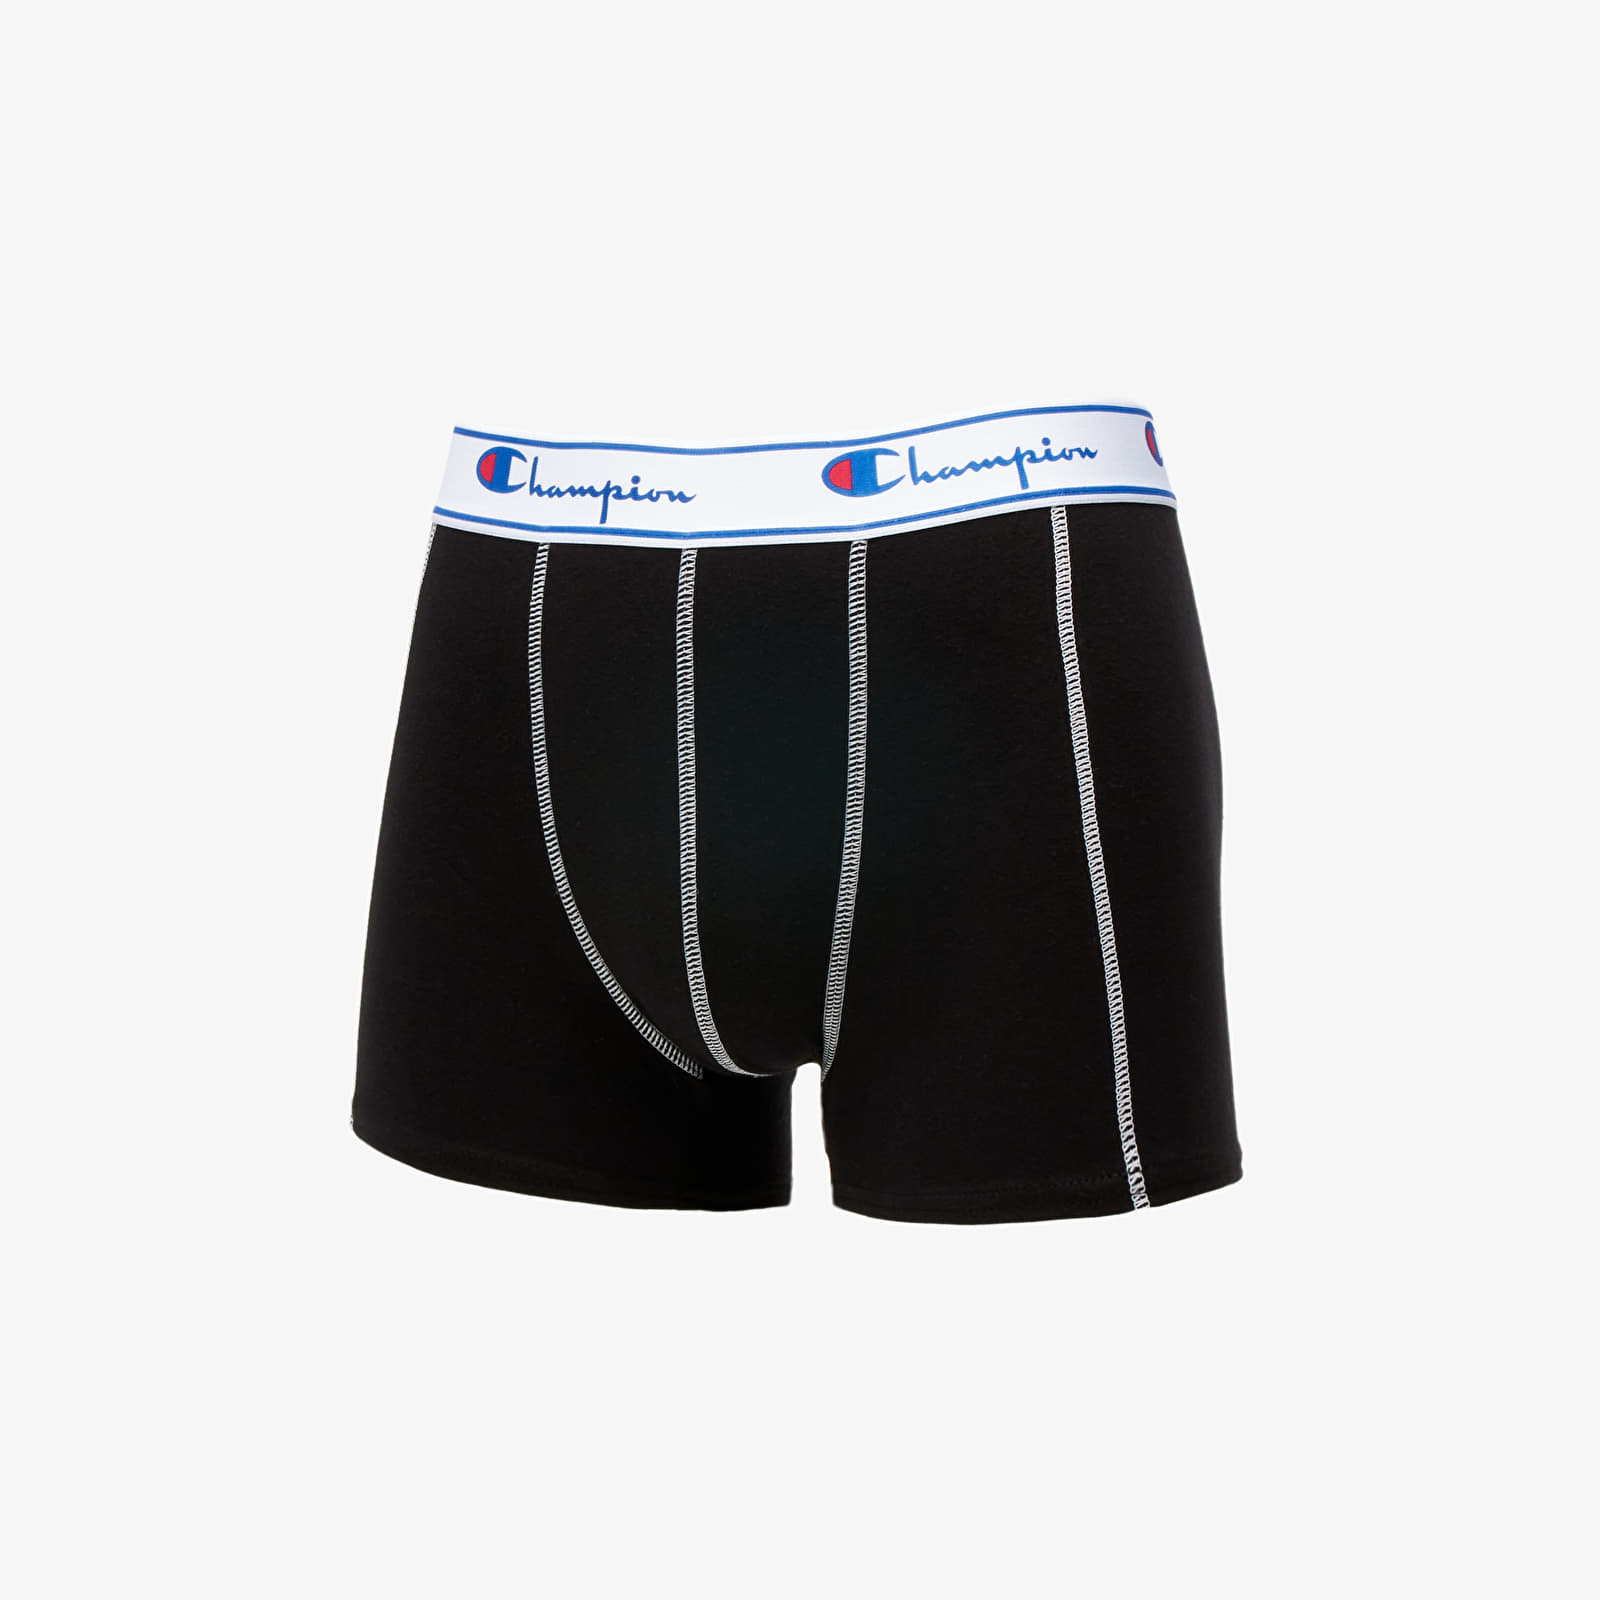 Βοξεράκια Champion 3-Pack Boxers Black